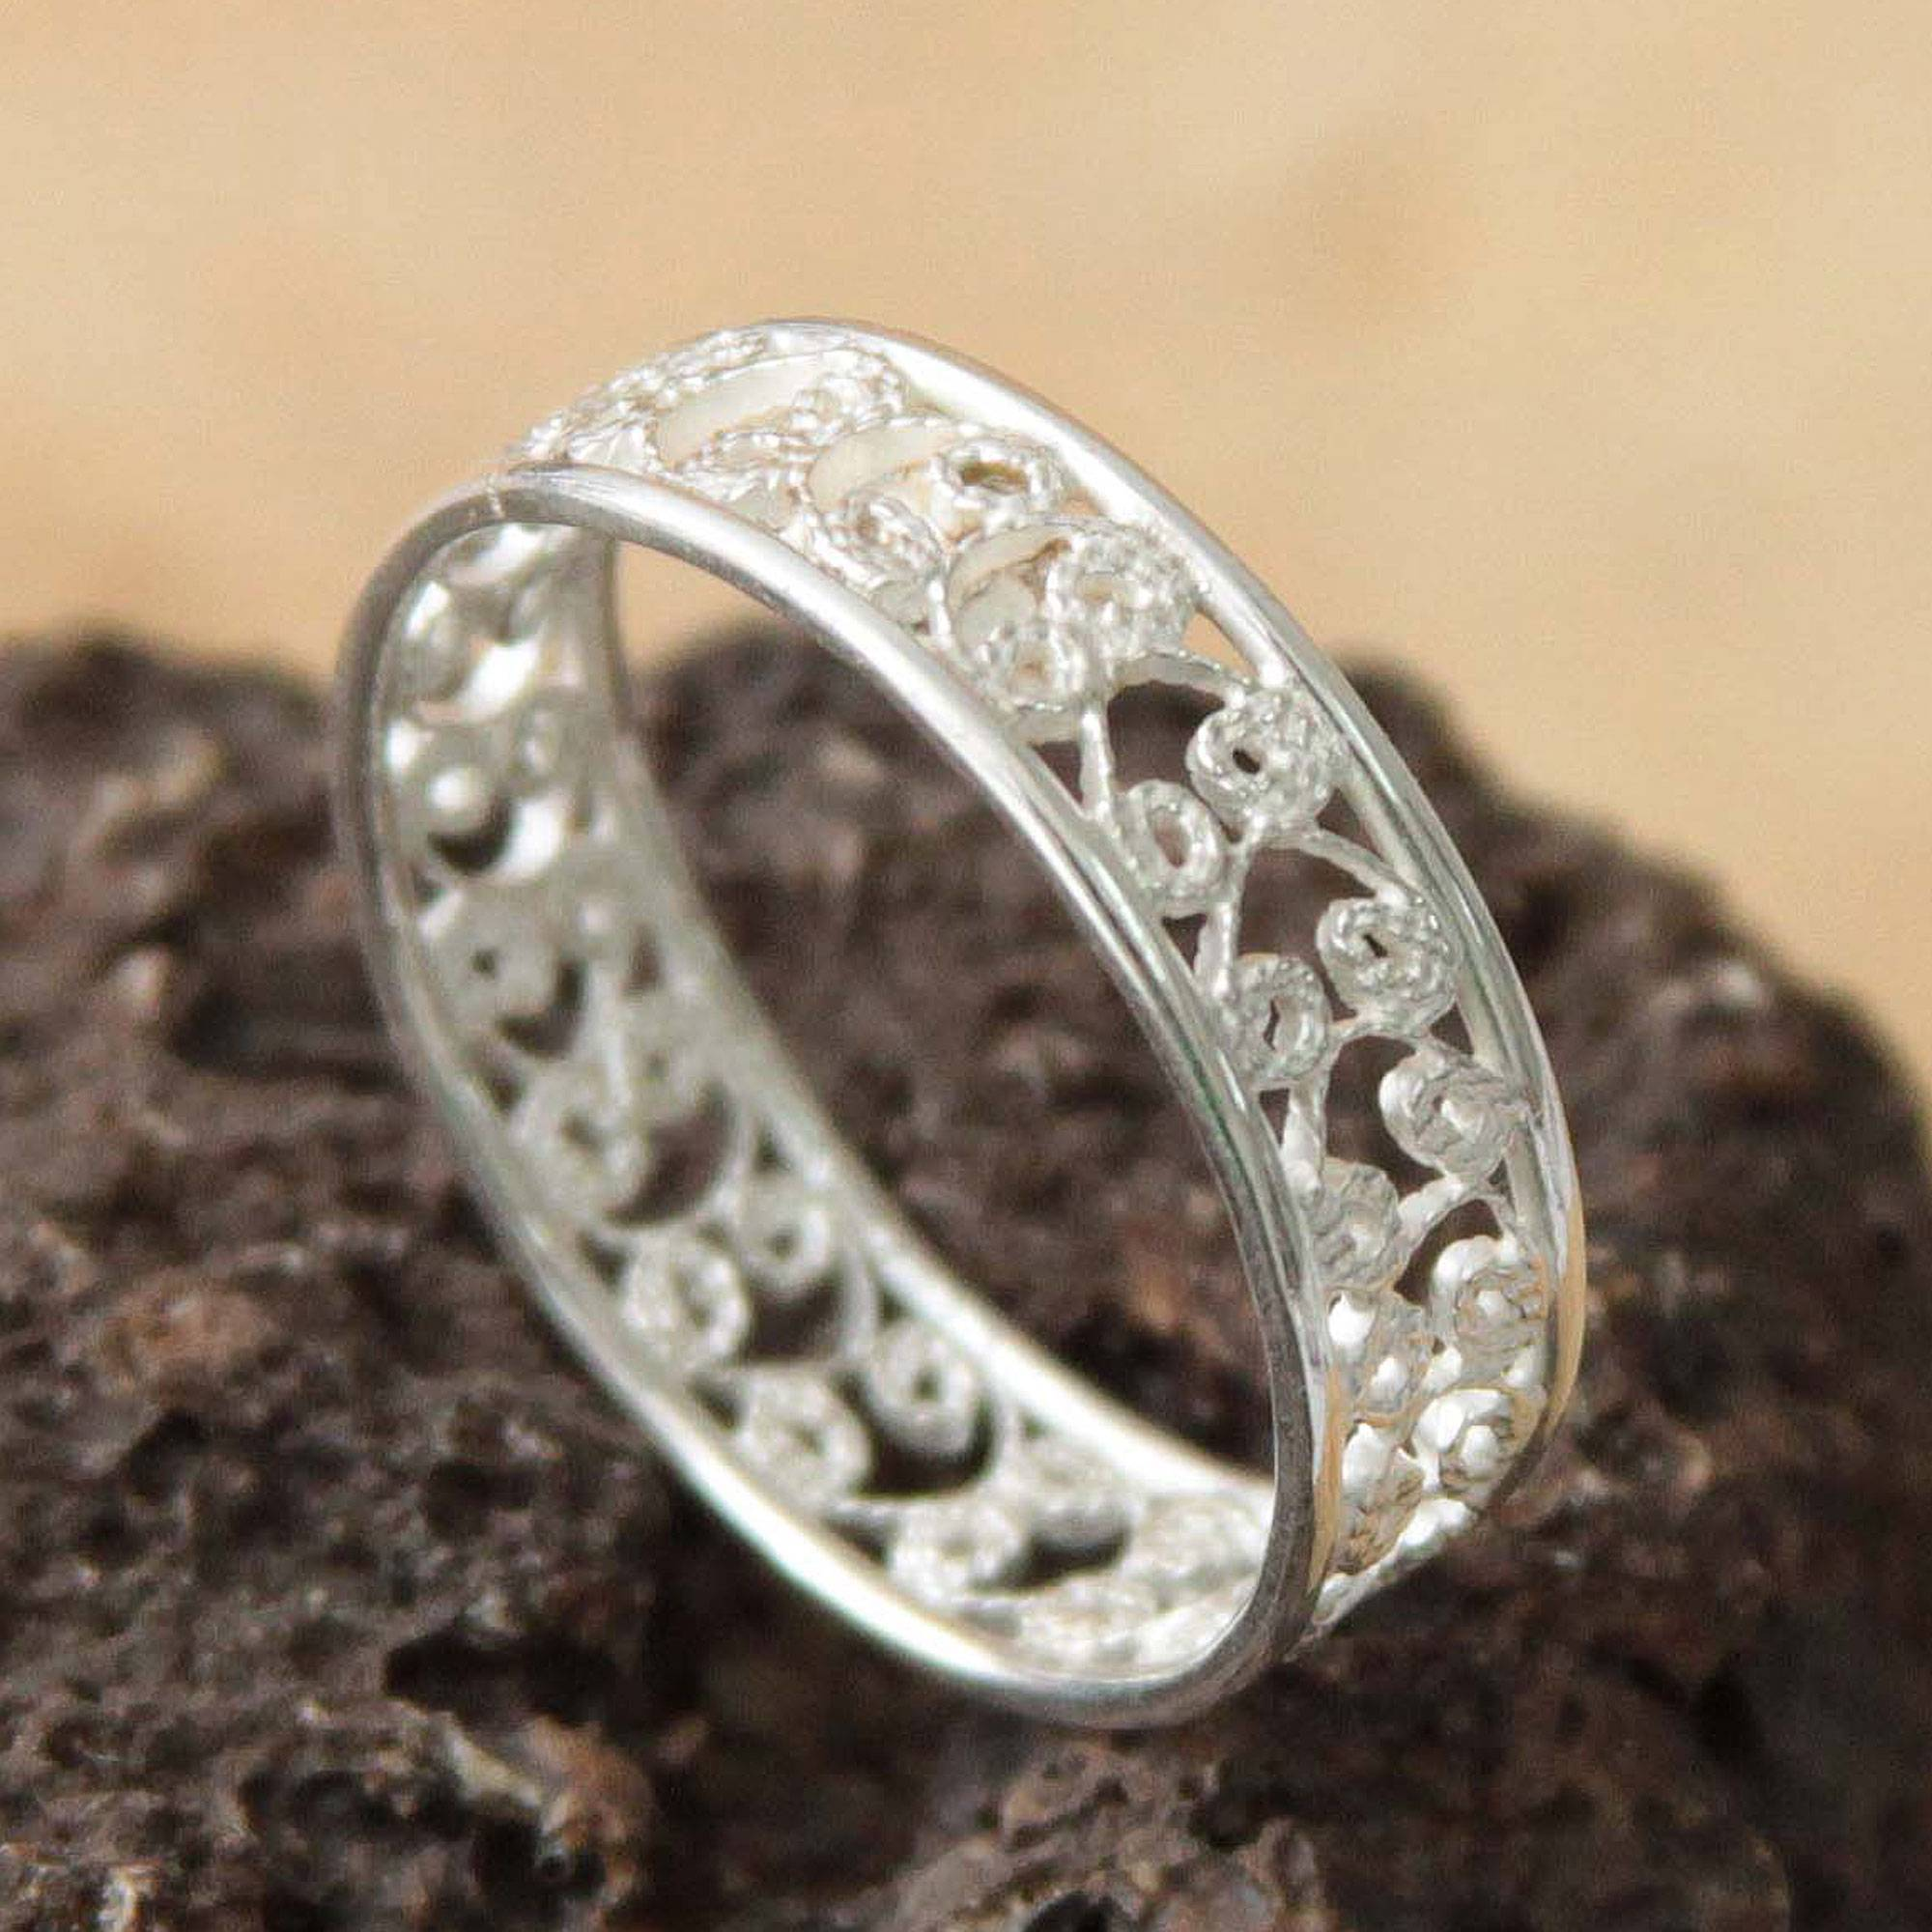 innocence silver art products of sterling inocents coral skin ring shot od deco age angel bands filigree